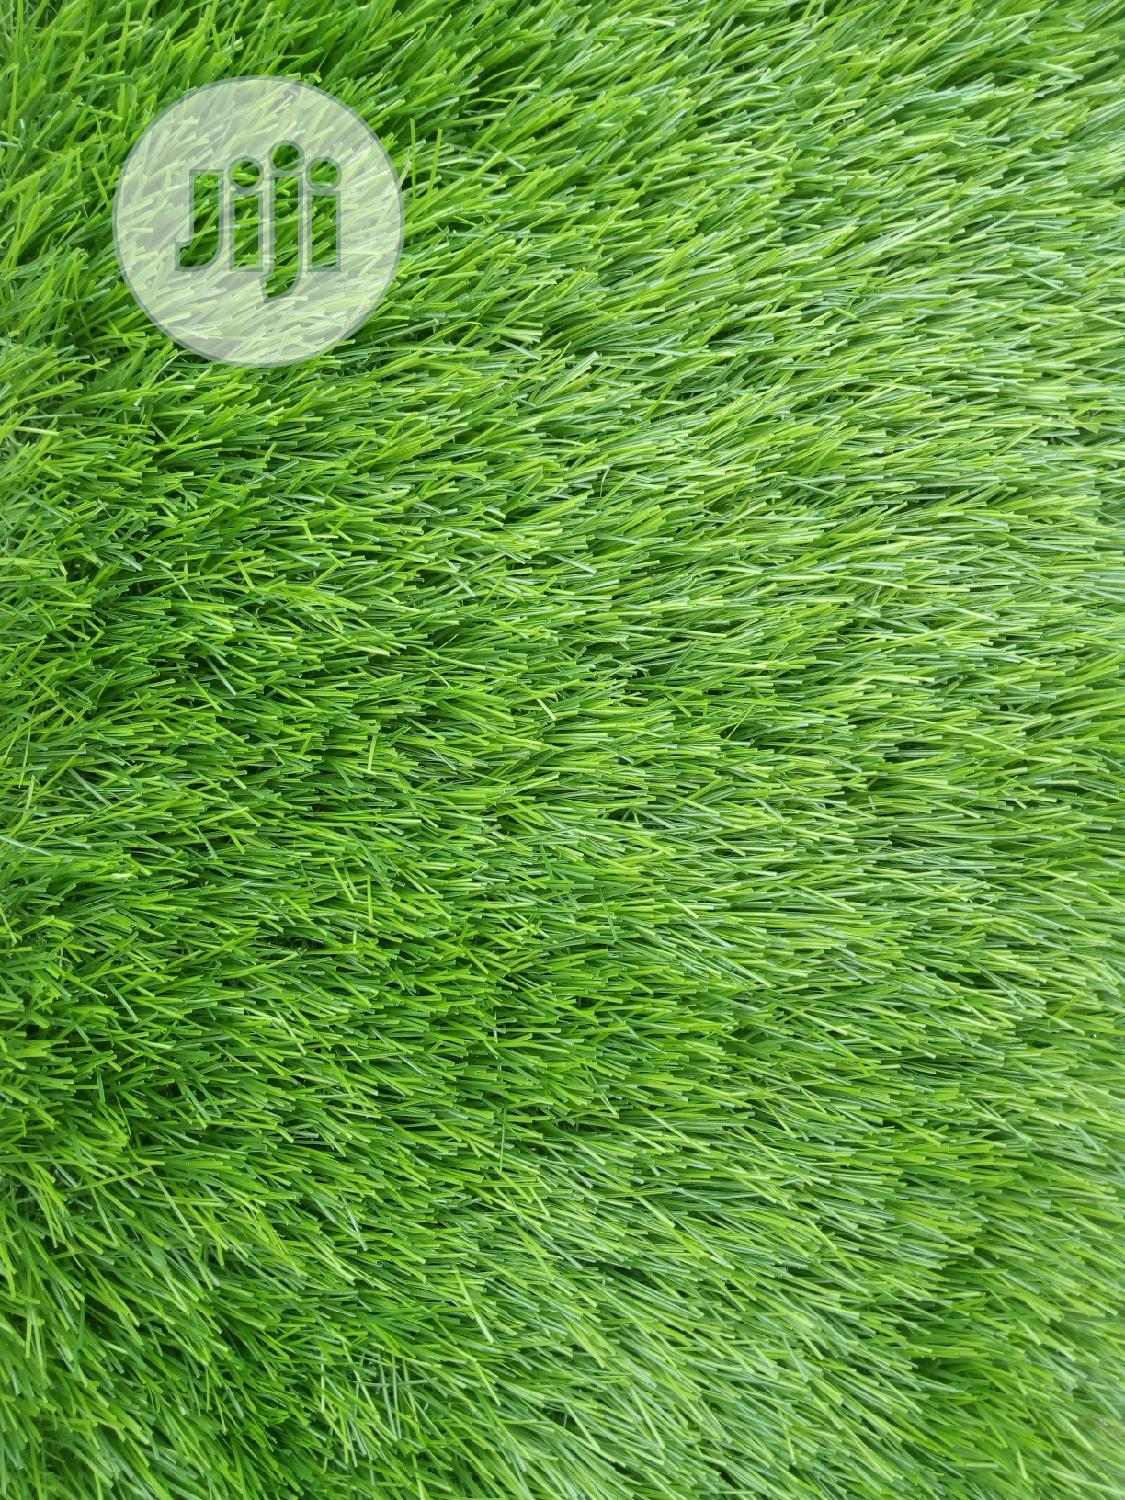 Adorable Green Grass Capet Rug (10mm) | Garden for sale in Apapa, Lagos State, Nigeria